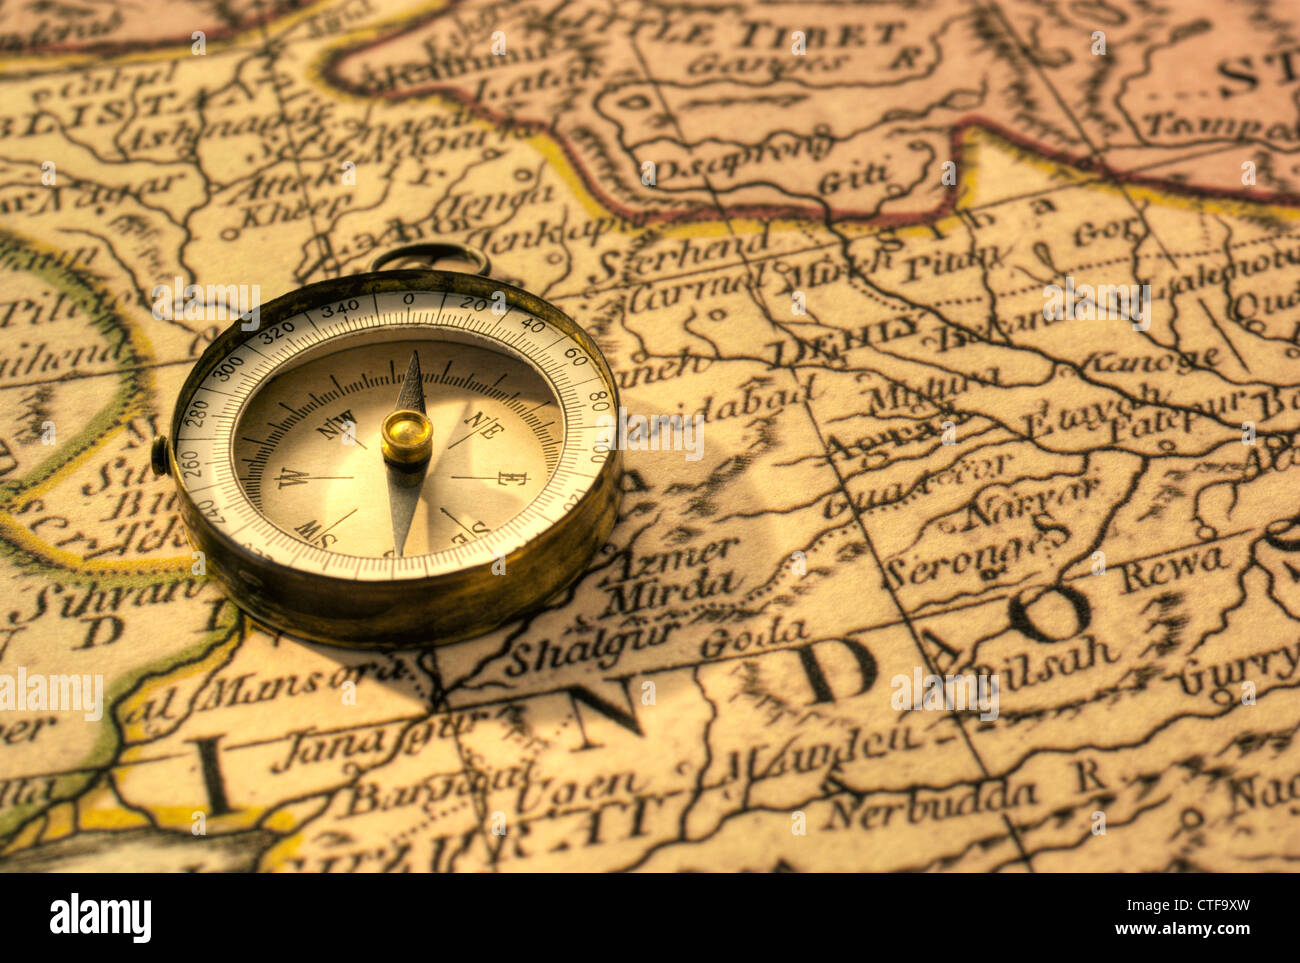 Old compass and map of northern india close to border with pakistan old compass and map of northern india close to border with pakistan gumiabroncs Gallery